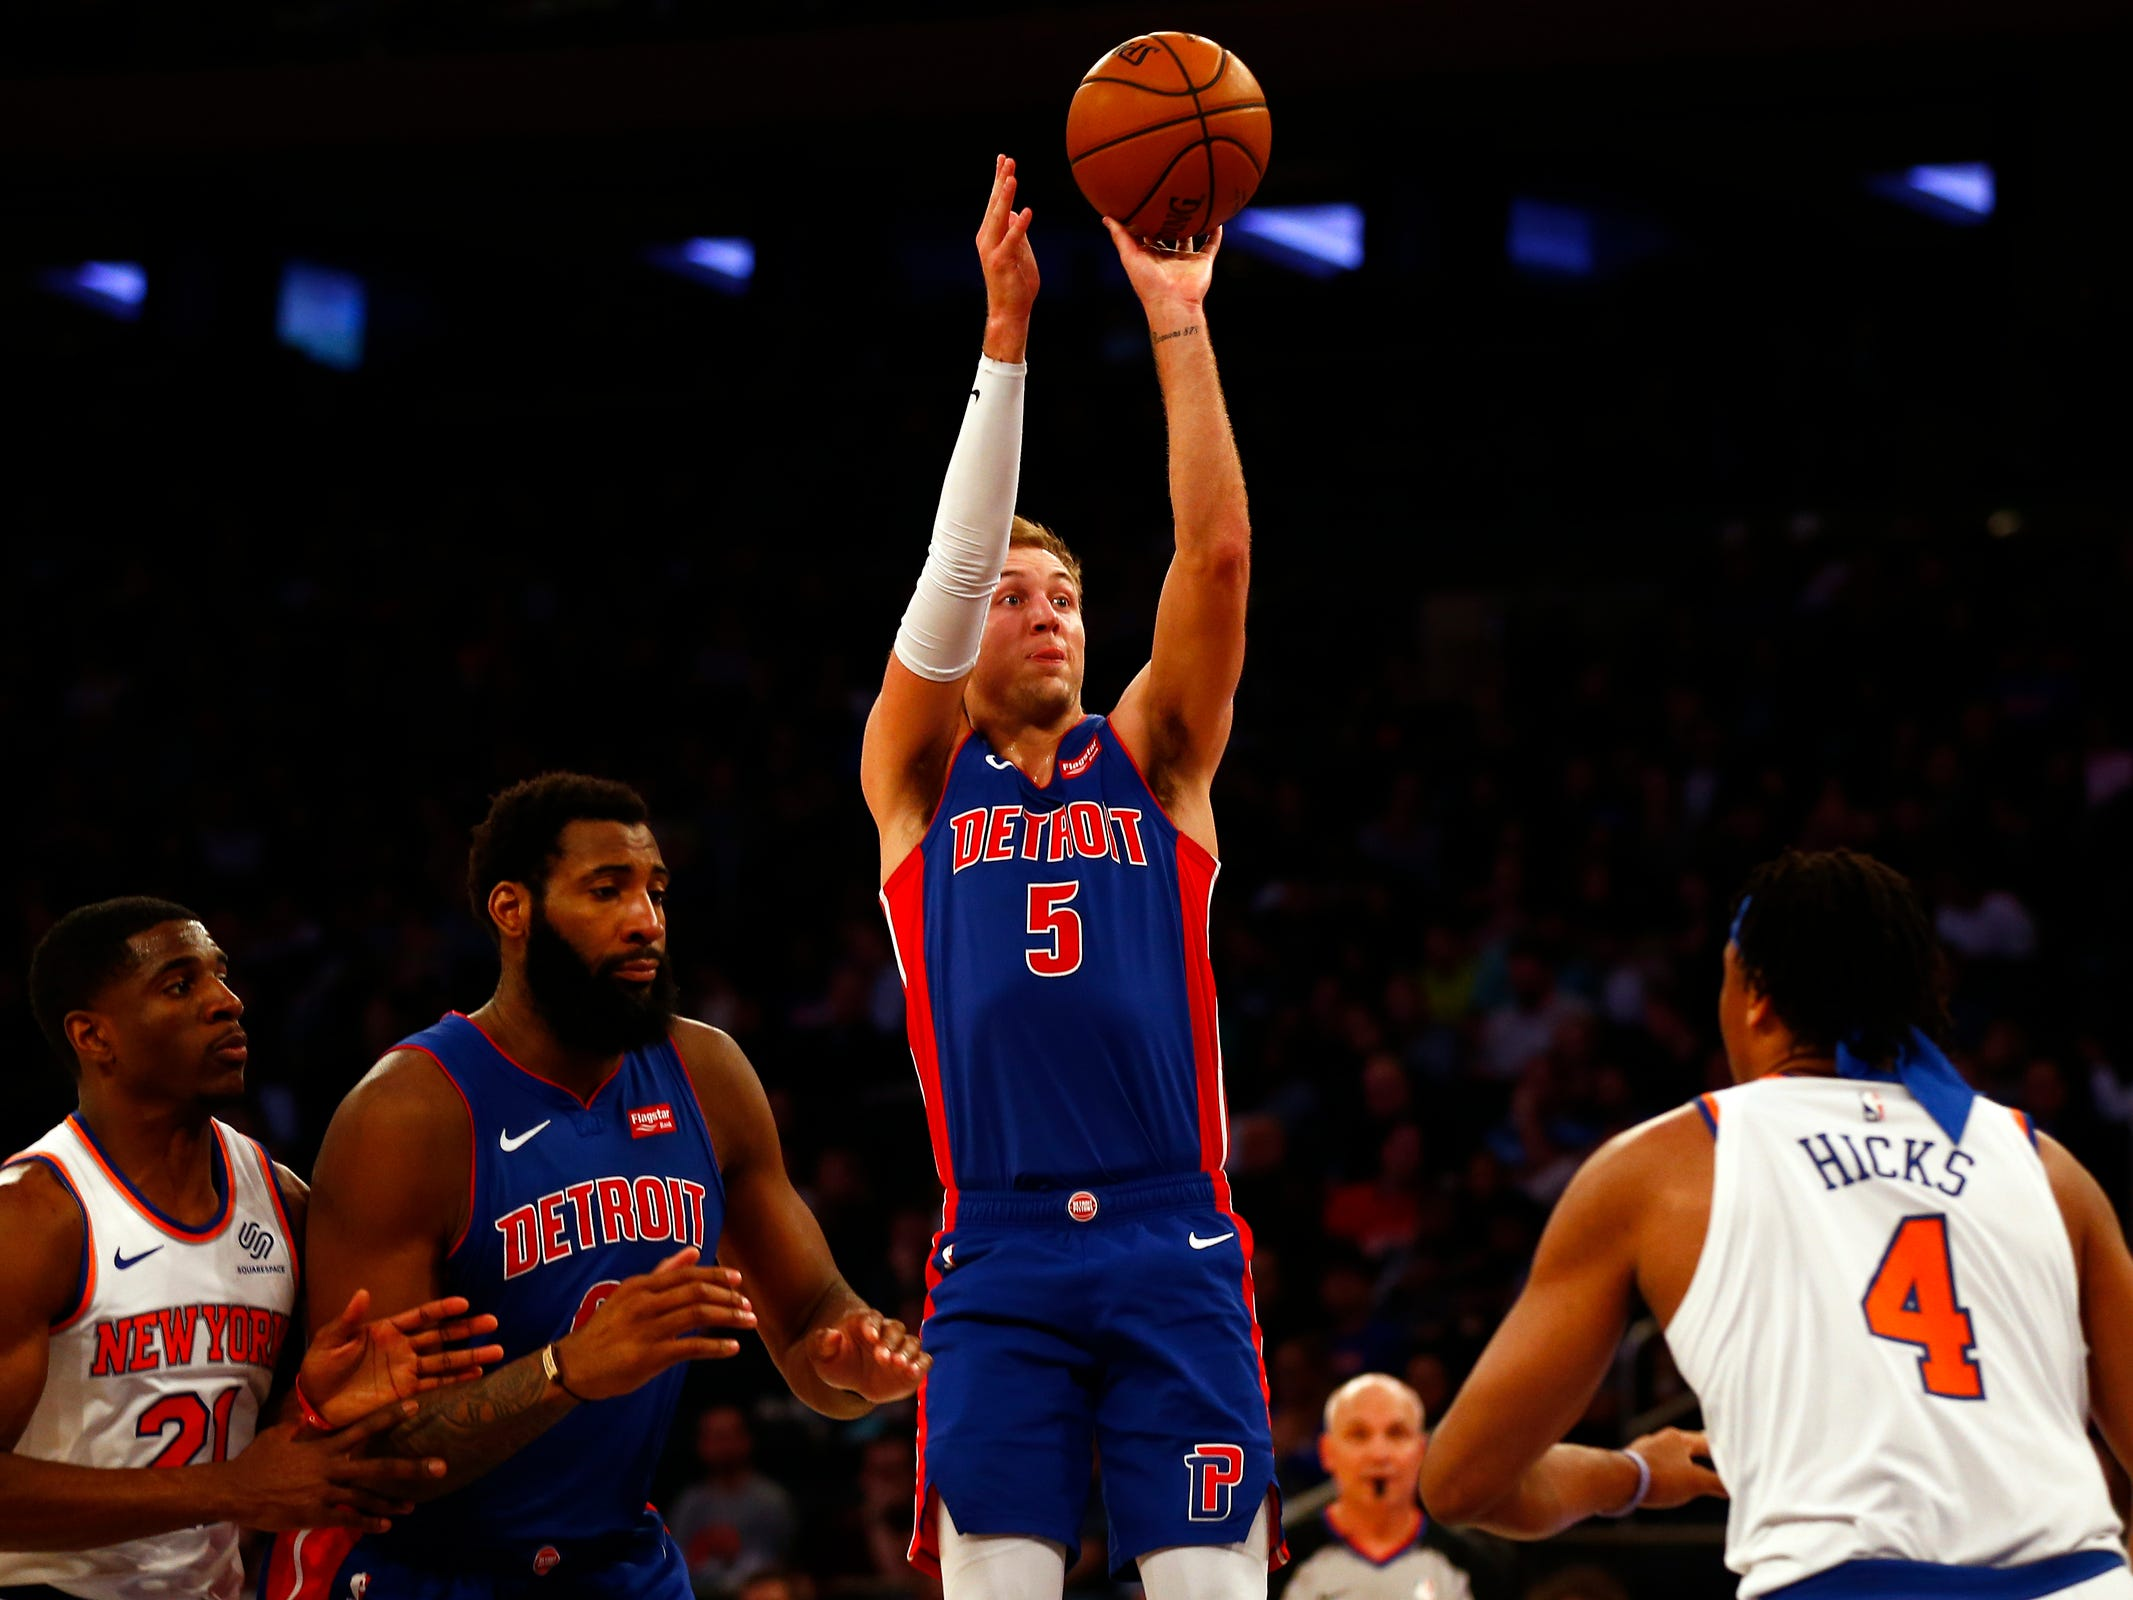 Detroit Pistons guard Luke Kennard shoots over New York Knicks forward Isaiah Hicks during the first half at Madison Square Garden on Wednesday, April 10, 2019.